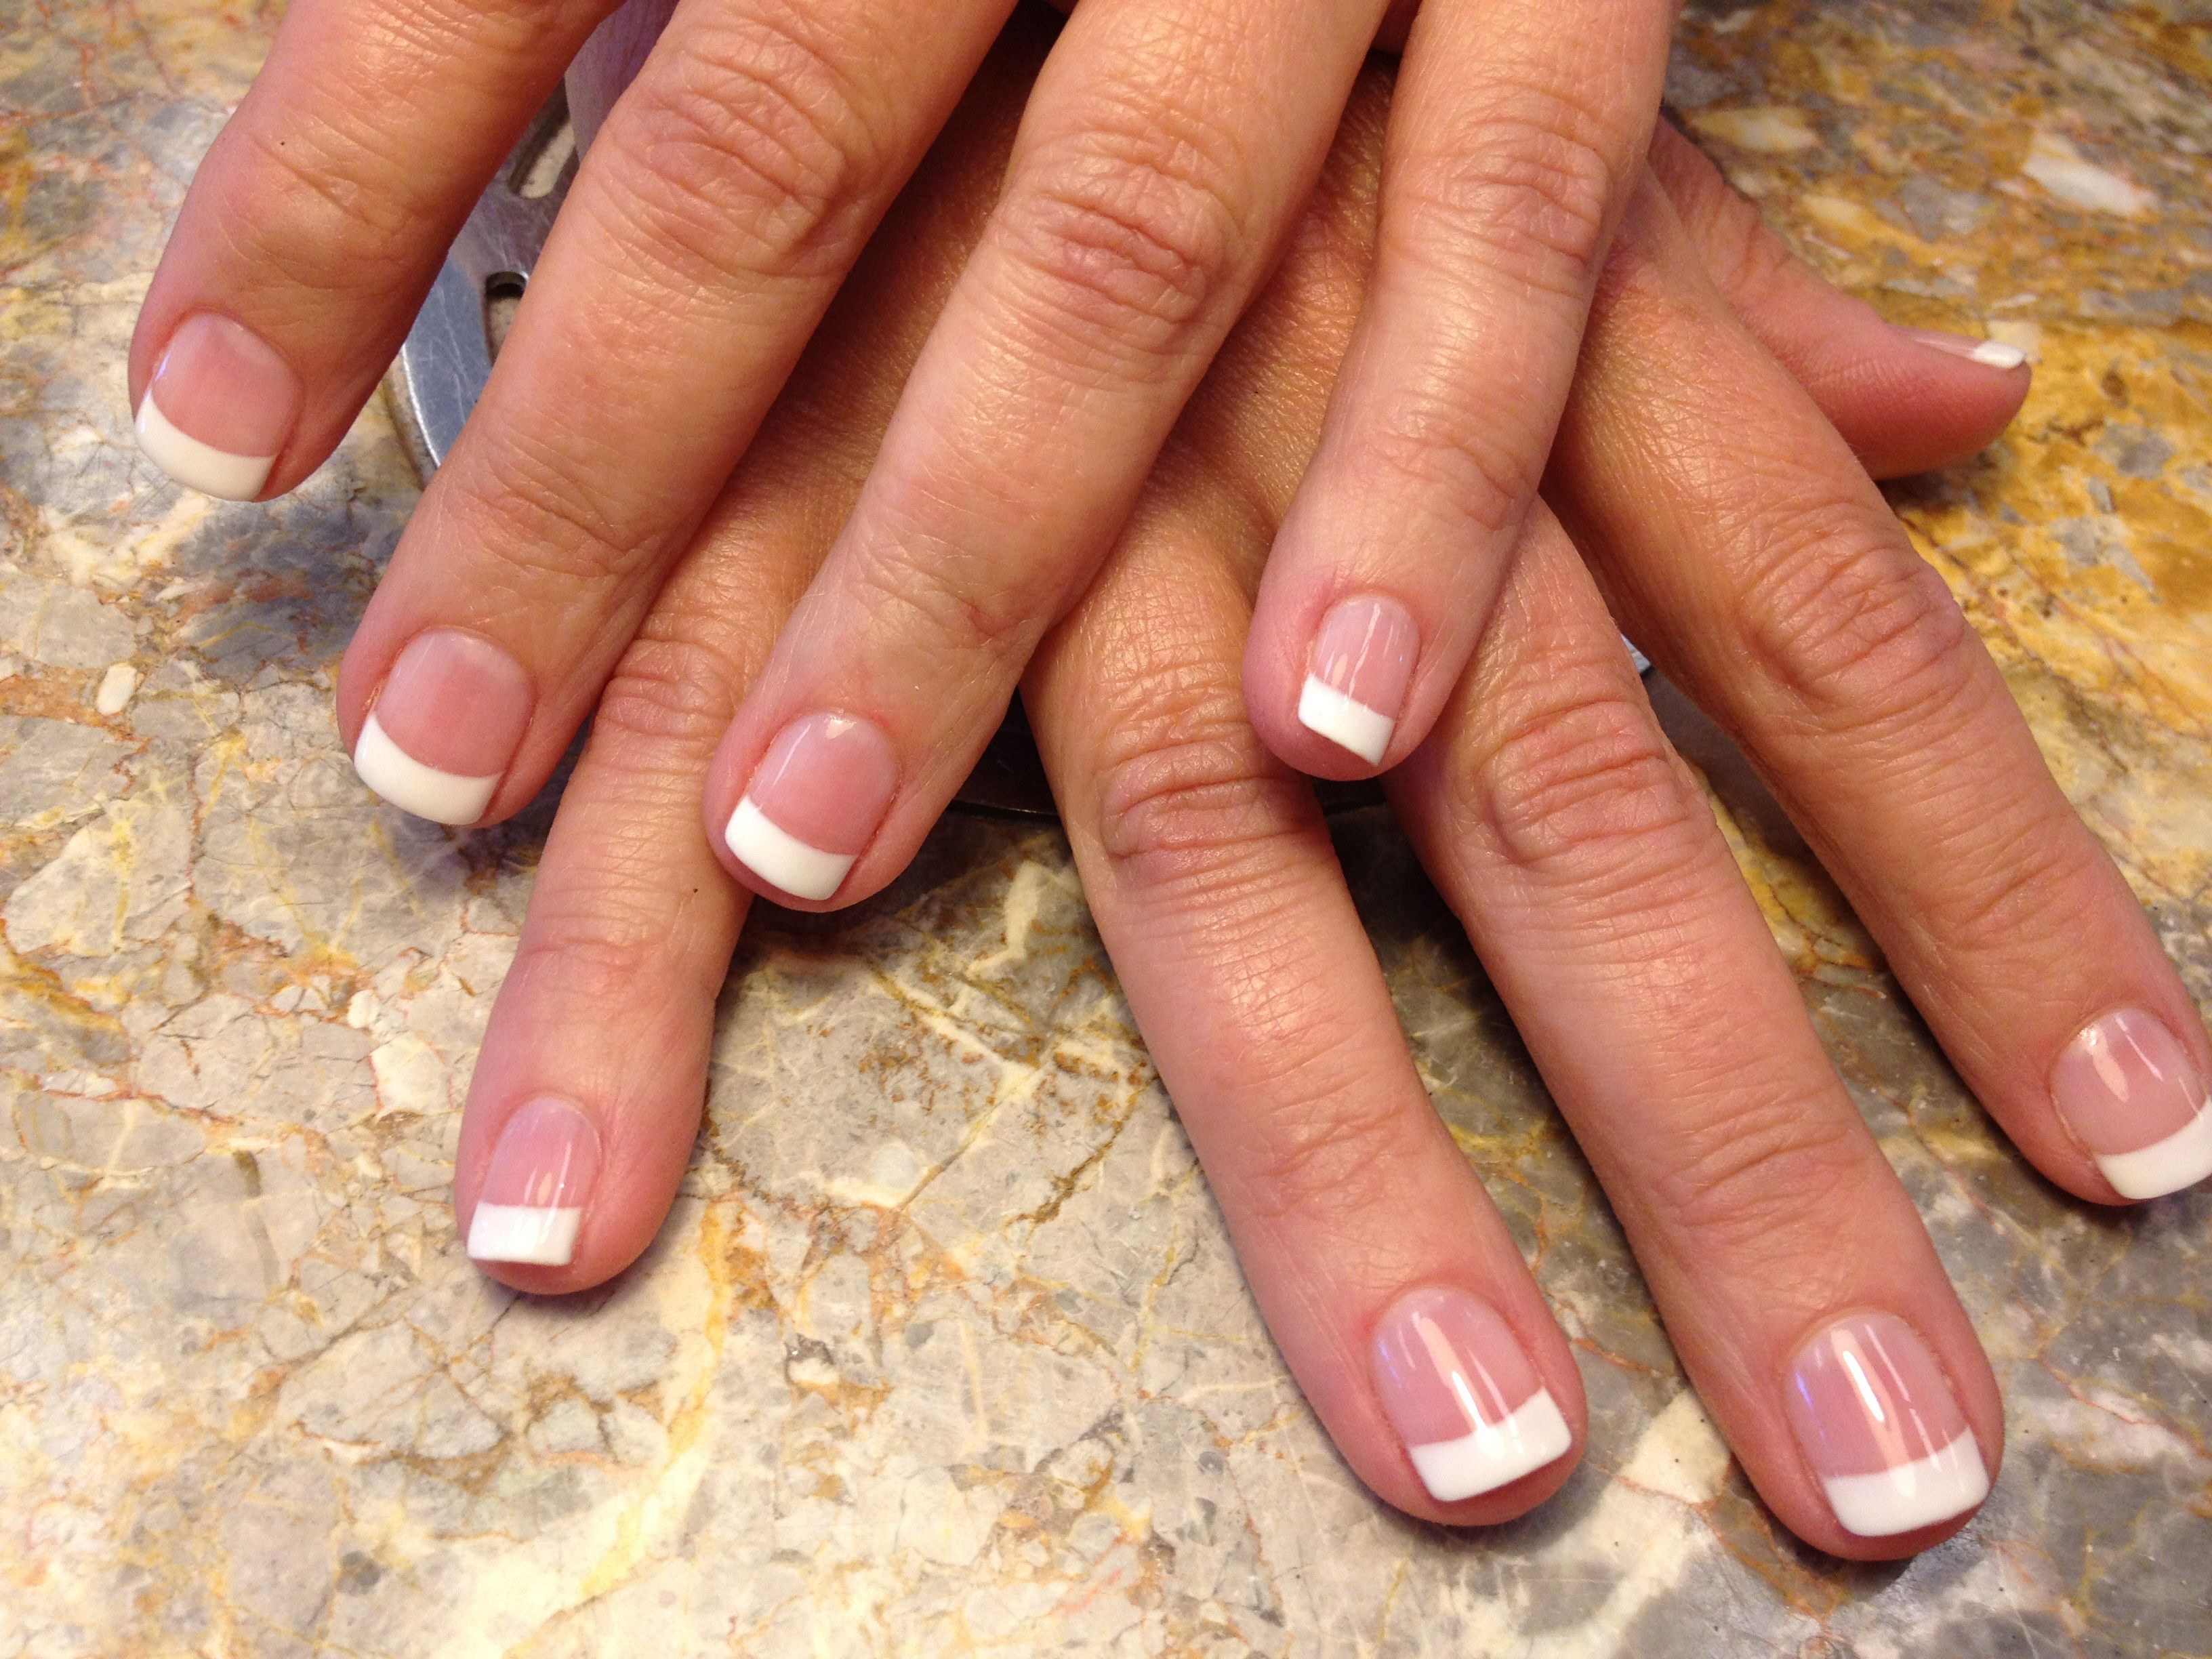 french gel mani on natural nails | Nicely Nails and Spa | Pinterest ...